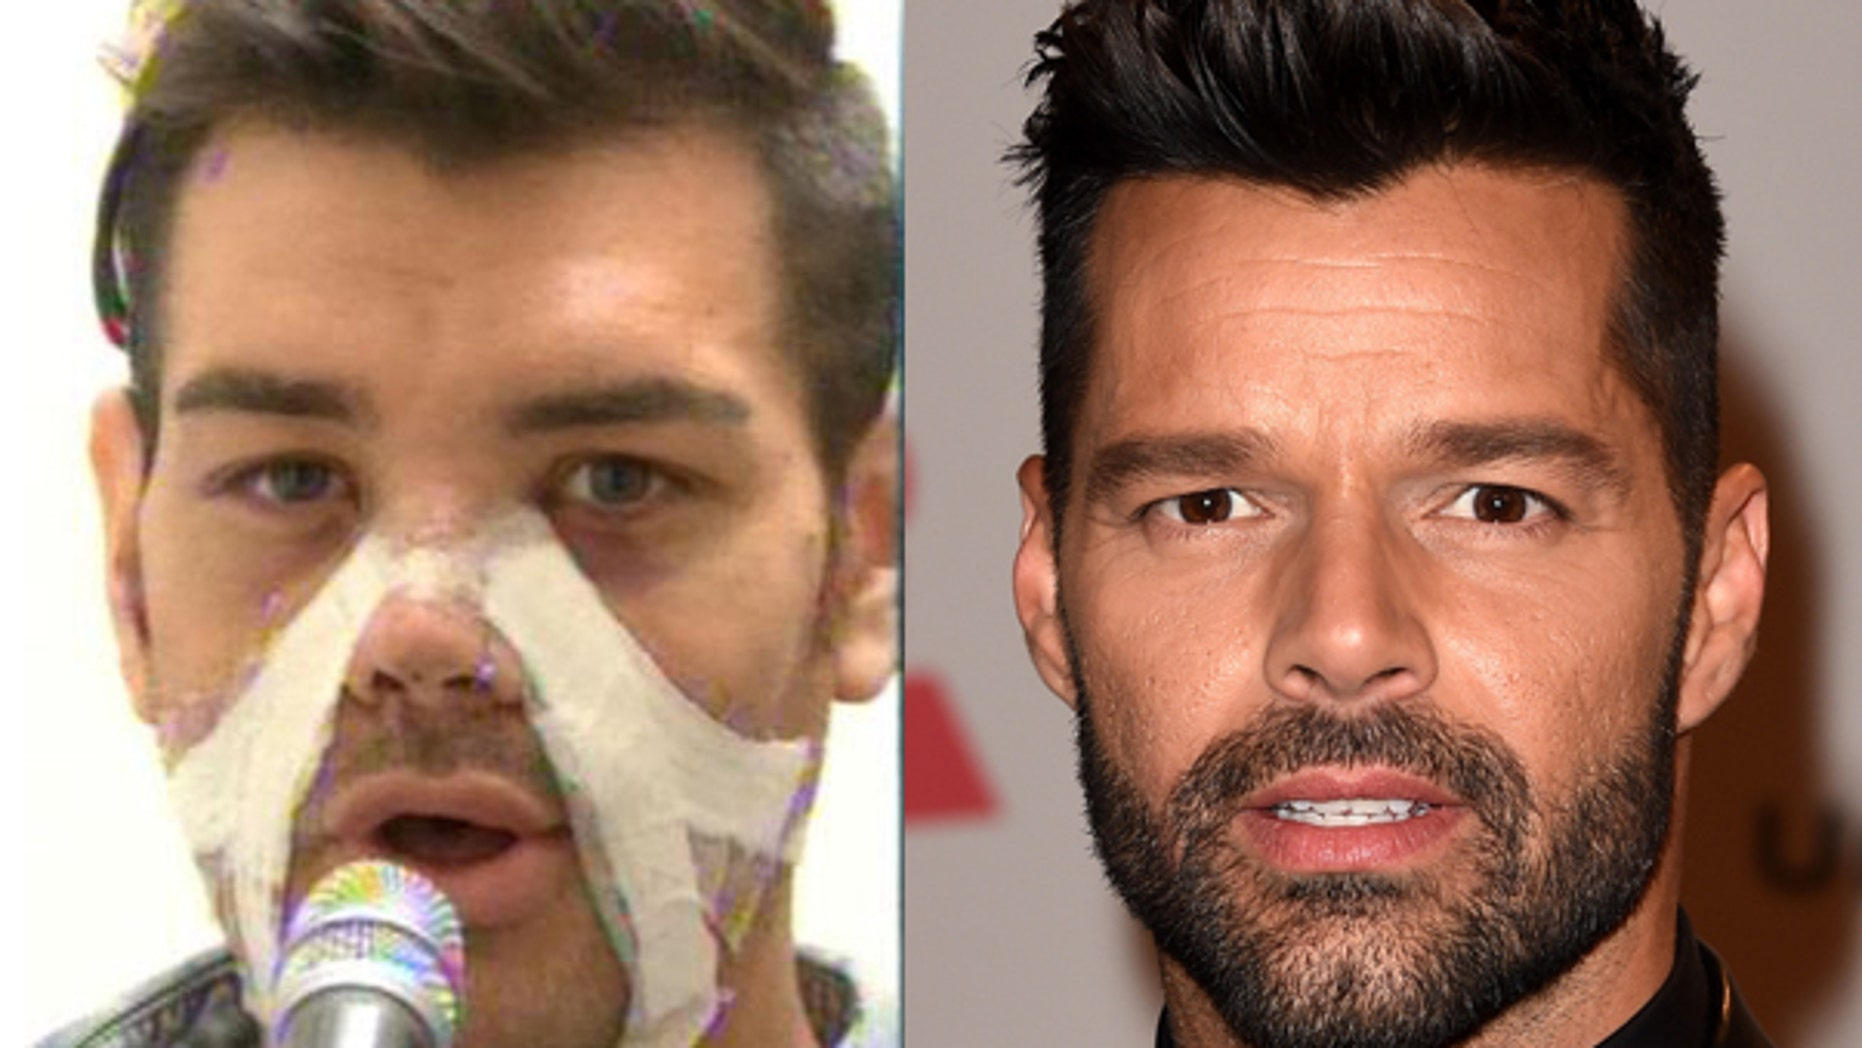 Fran Mariano after his surgery to look like Ricky Martin.